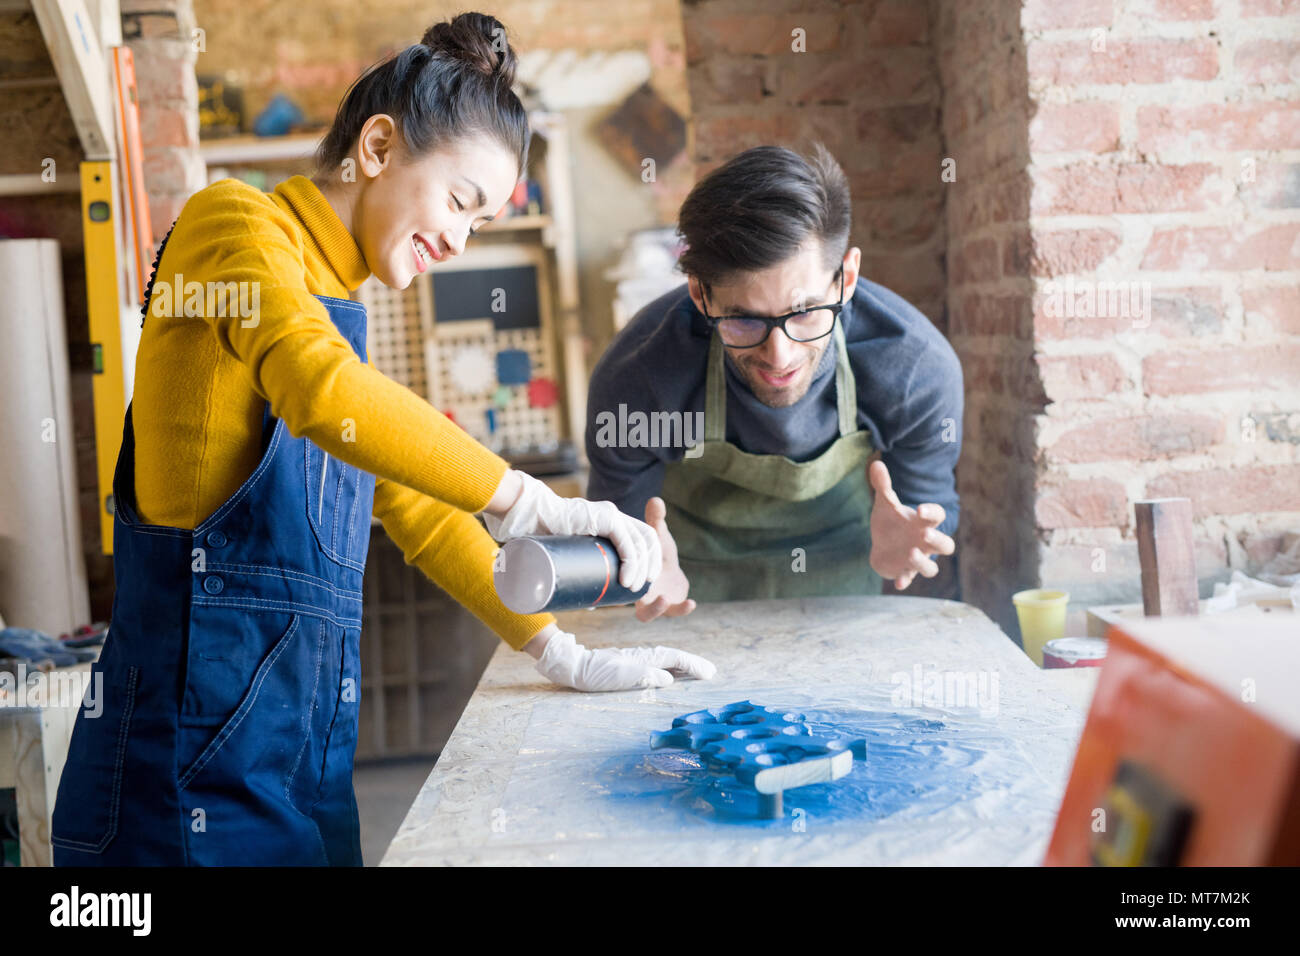 Excited Artisans Doing Creative Woodwork - Stock Image